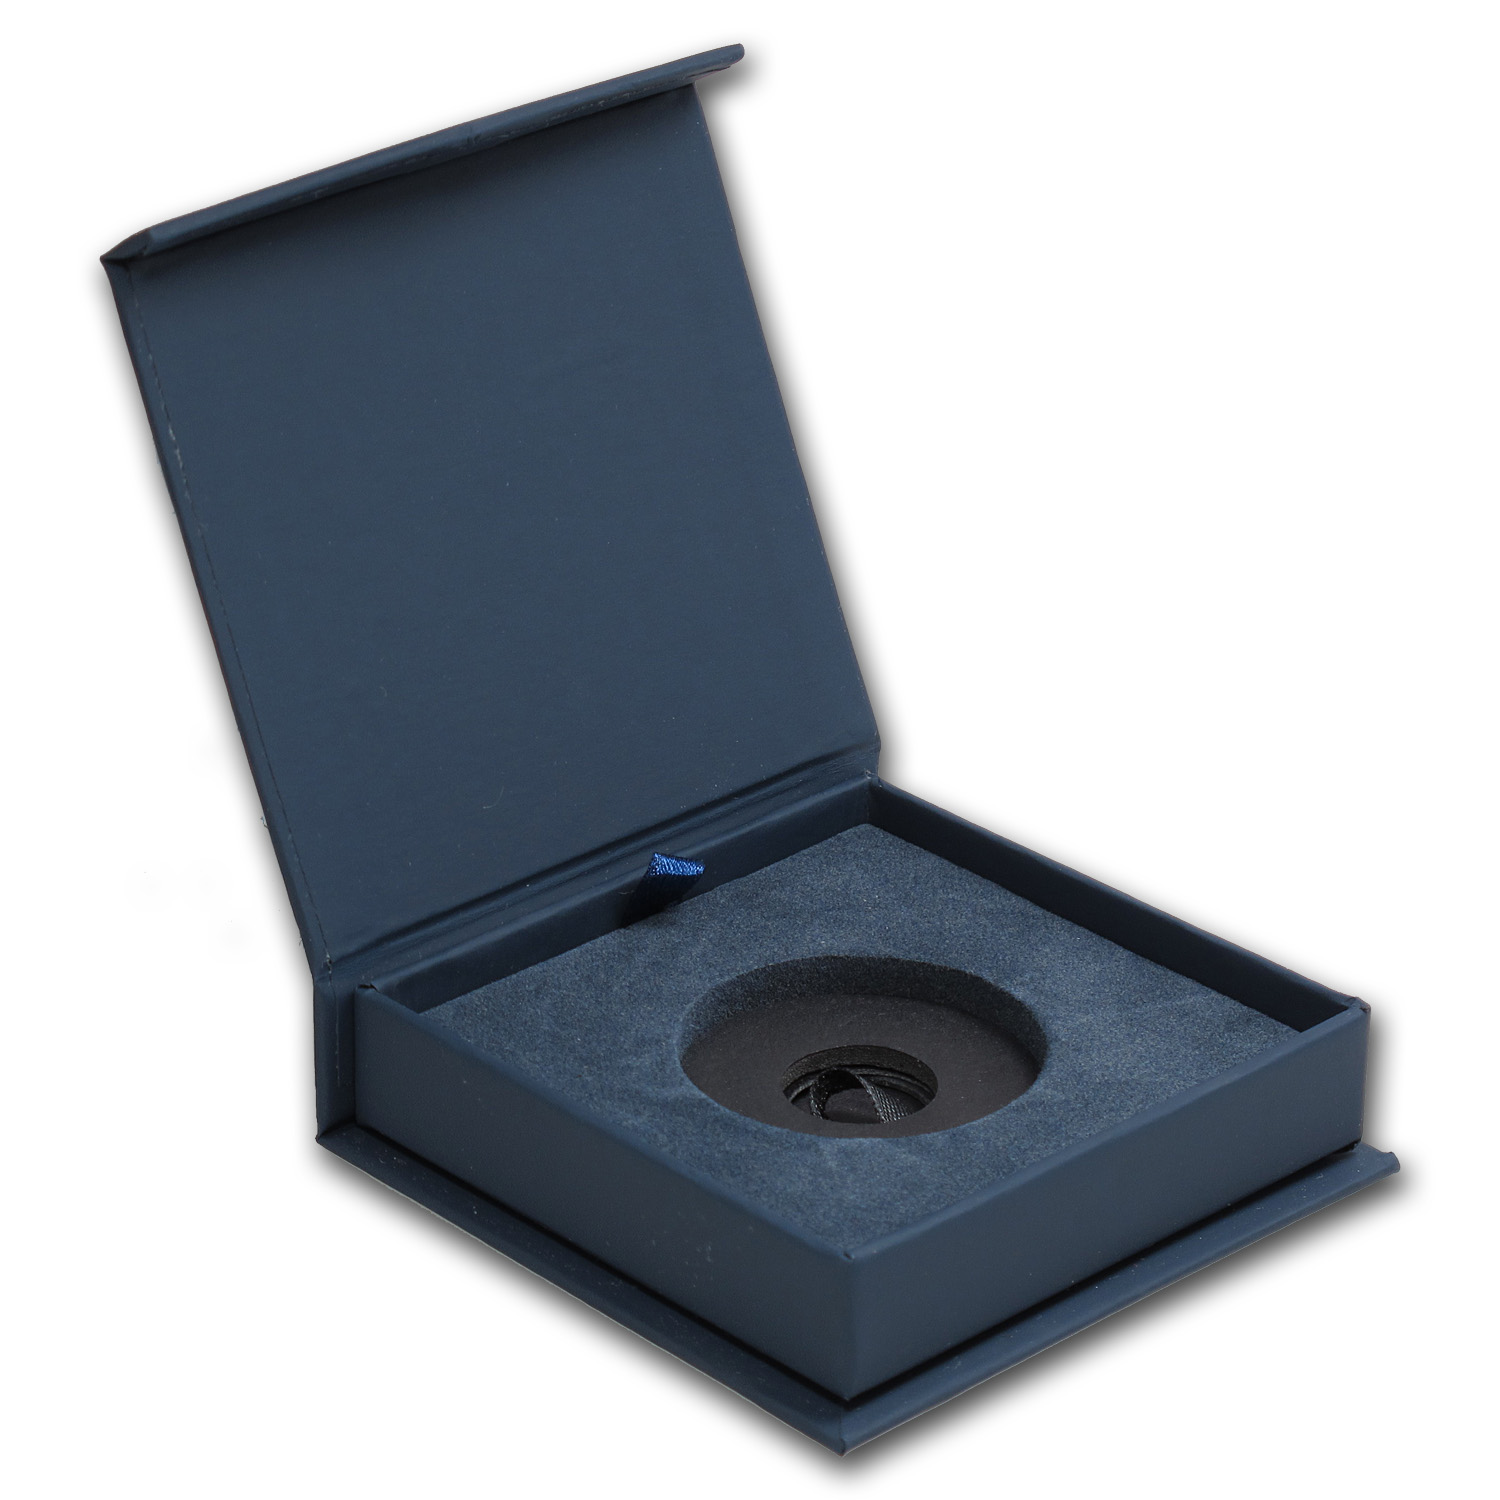 APMEX Coin Presentation Box - Fits Miscellaneous Gold & Silver